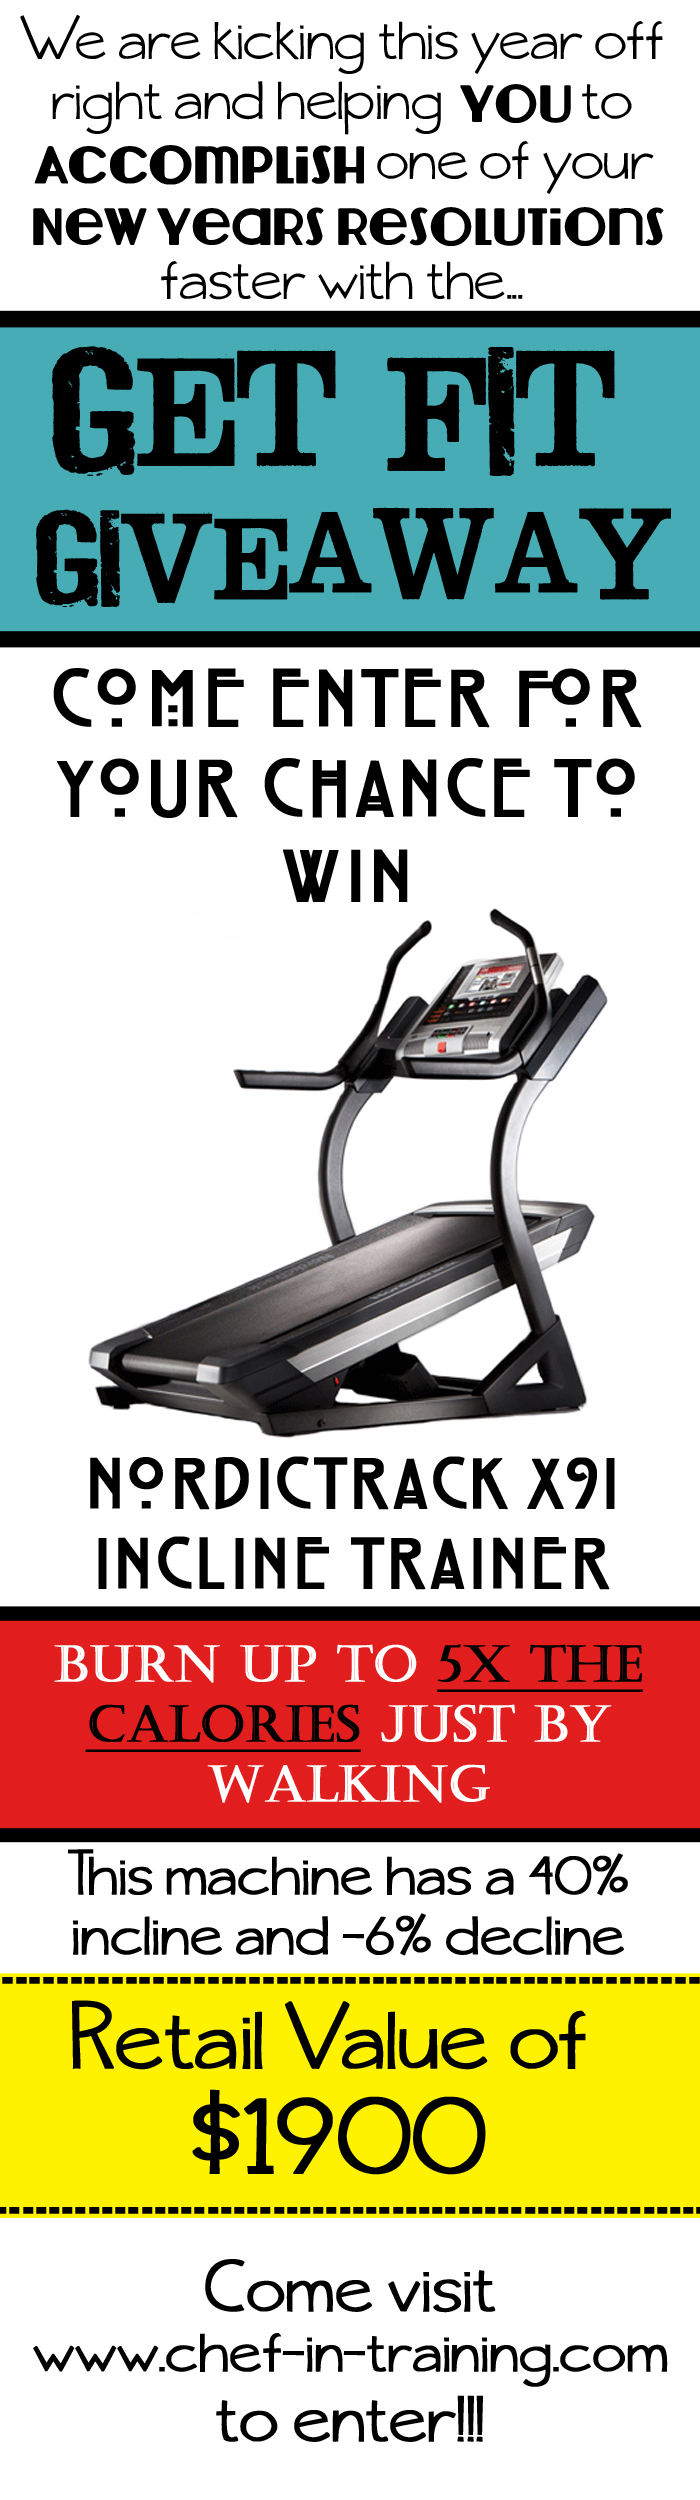 Get Fit Giveaway! Come enter for your chance to win a NordicTrack X9i Incline Trainer. $1900 Value!